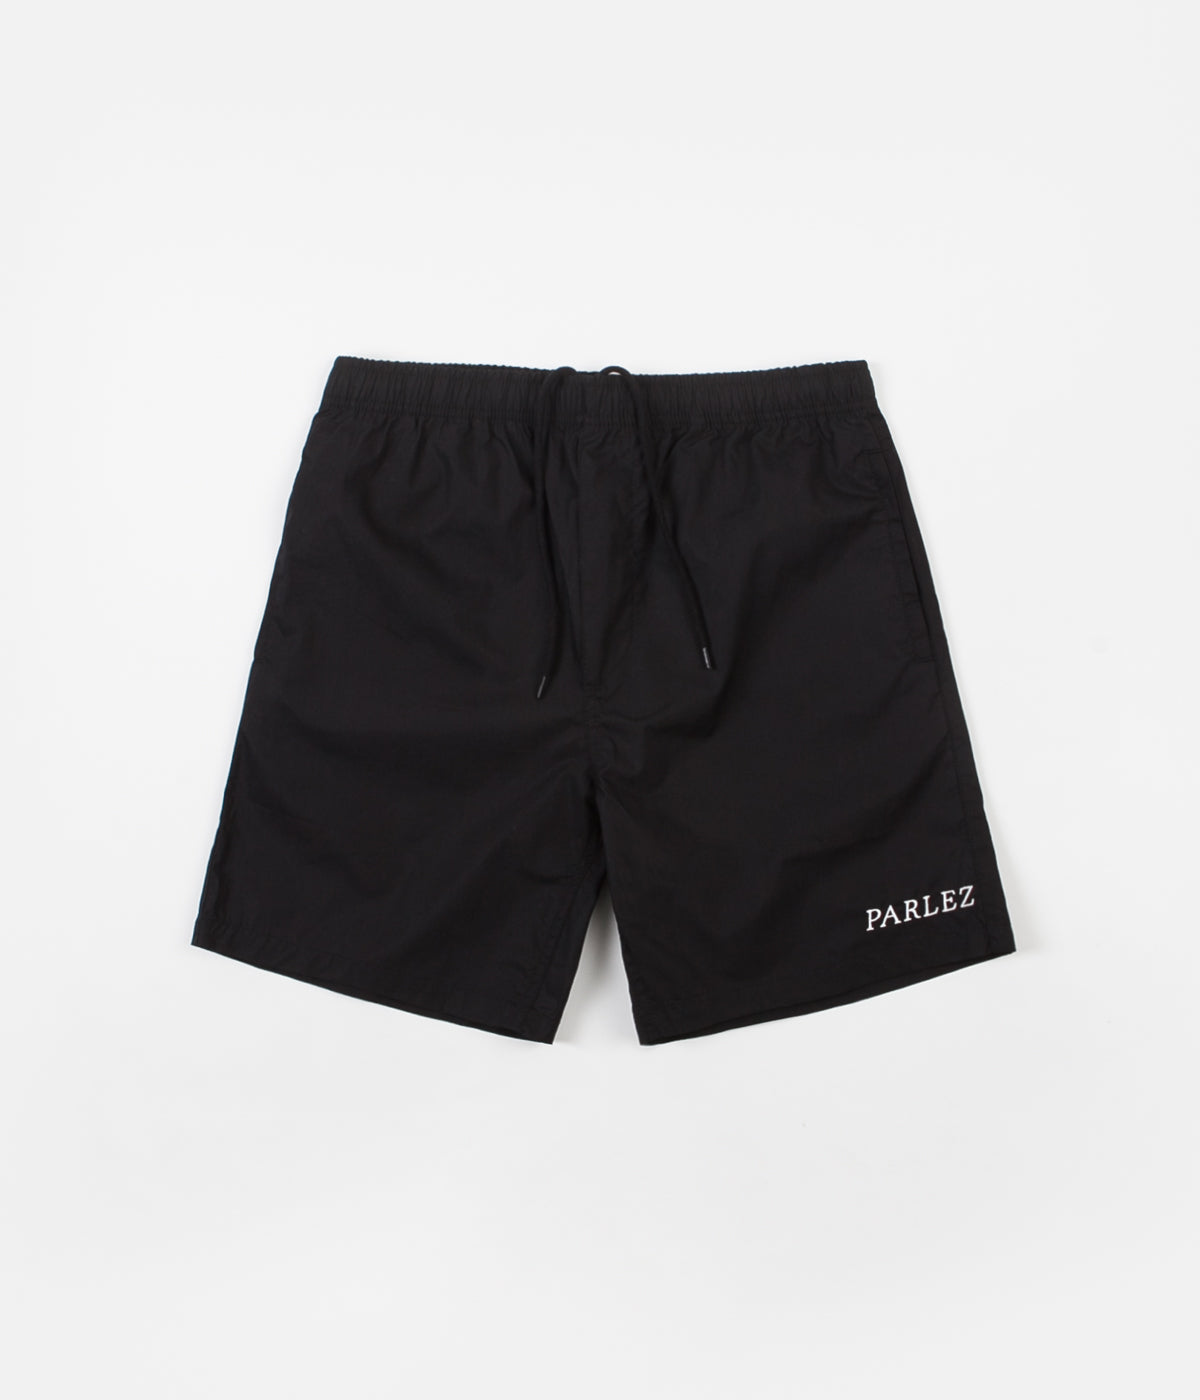 Parlez Kirk Swim Shorts - Black